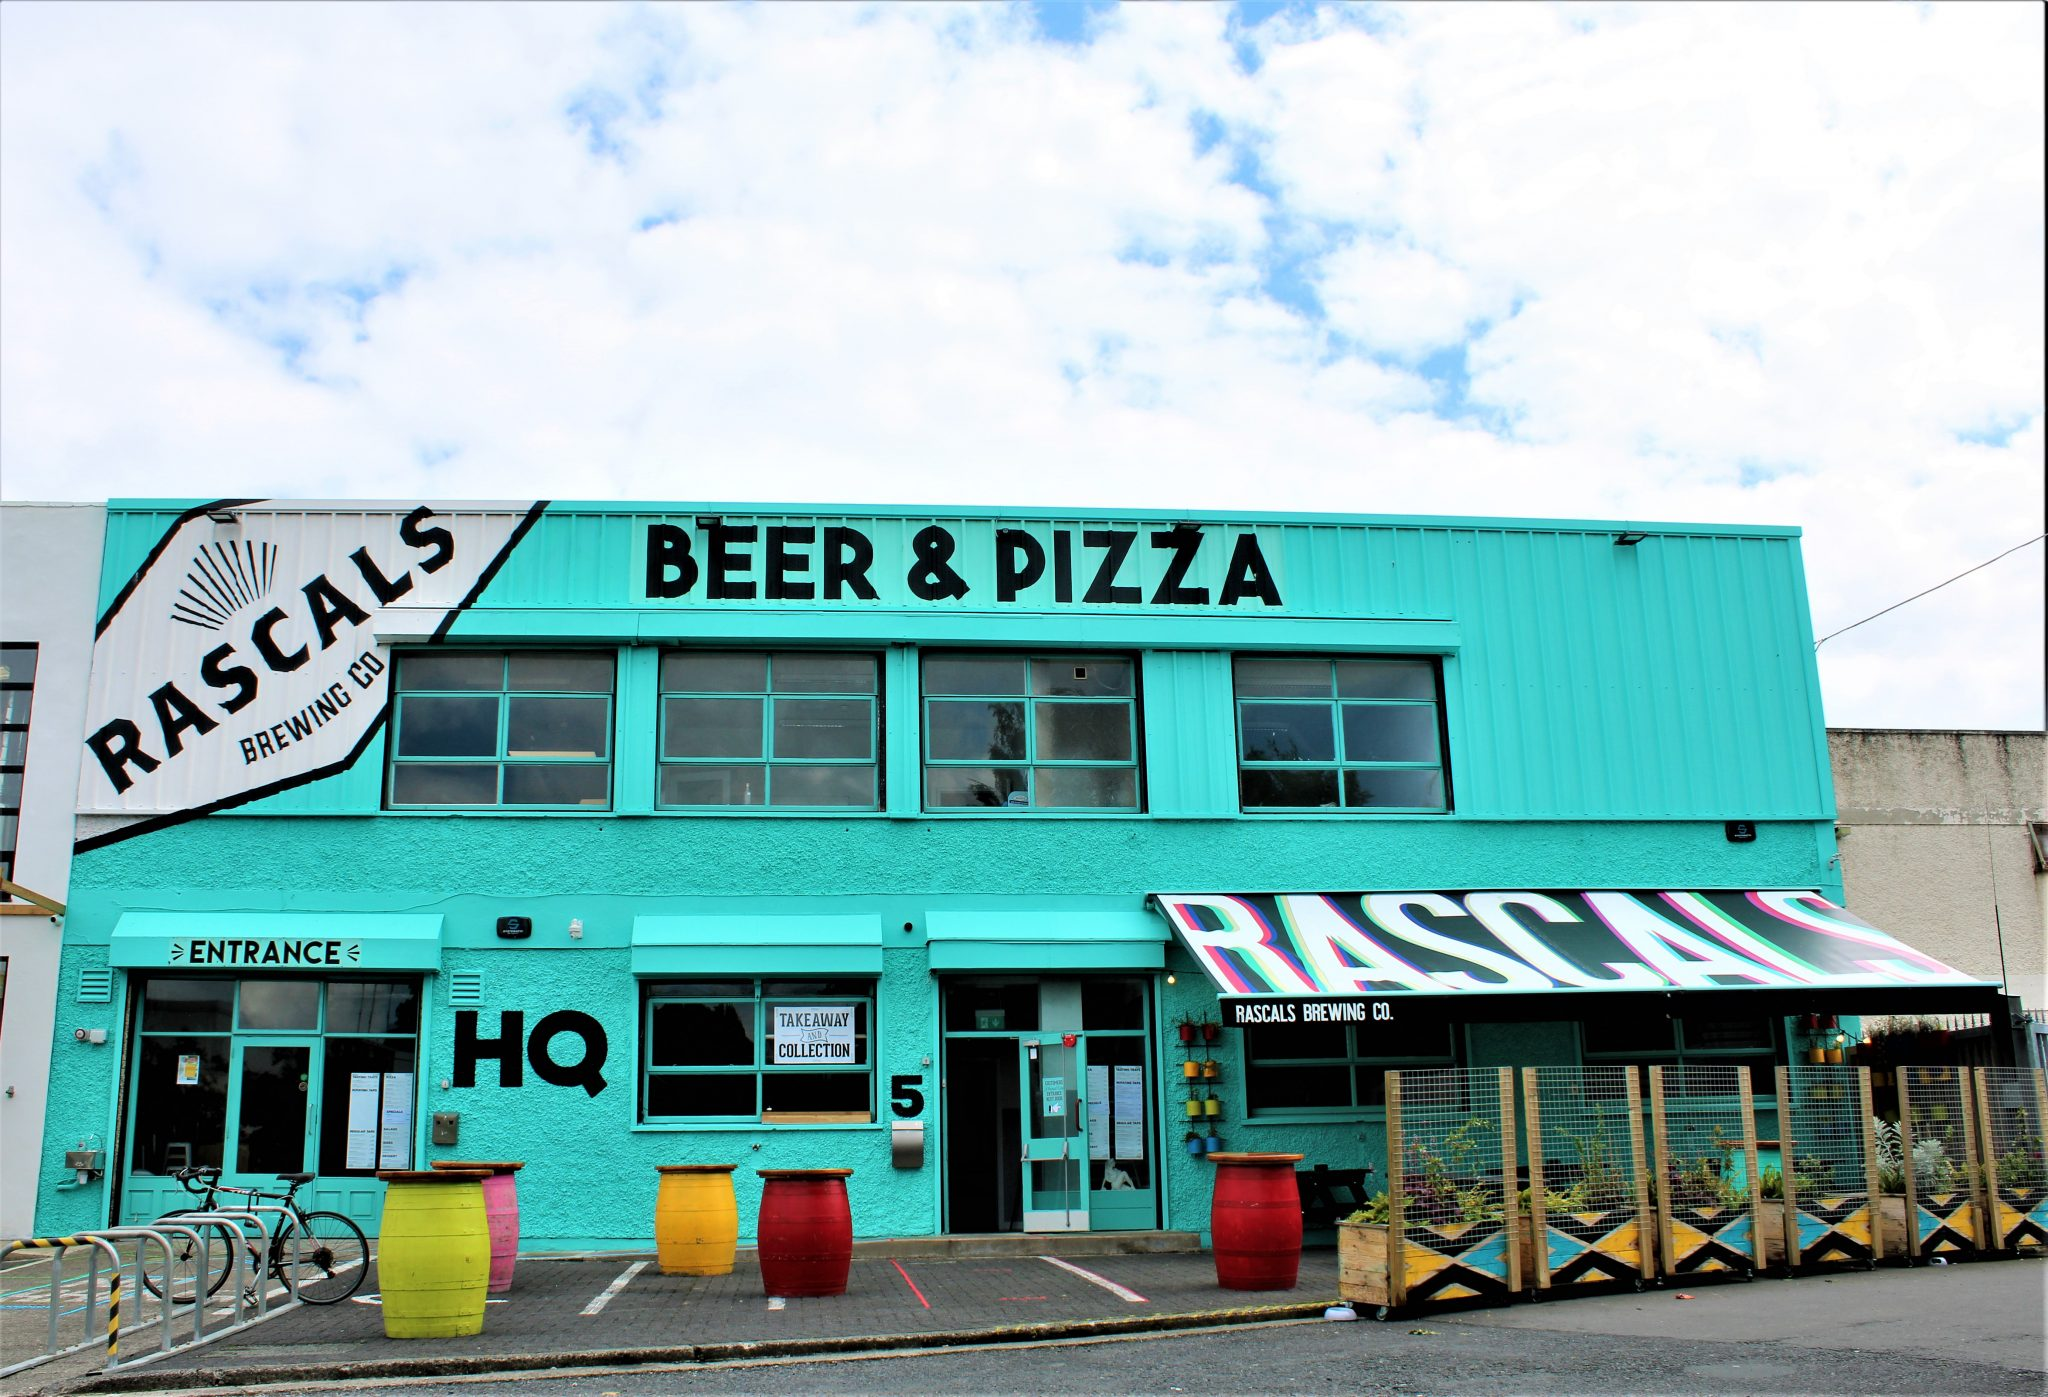 Rascals Brewing Co., Dublin | Taproom, Off-Licence & Pizza Restaurant